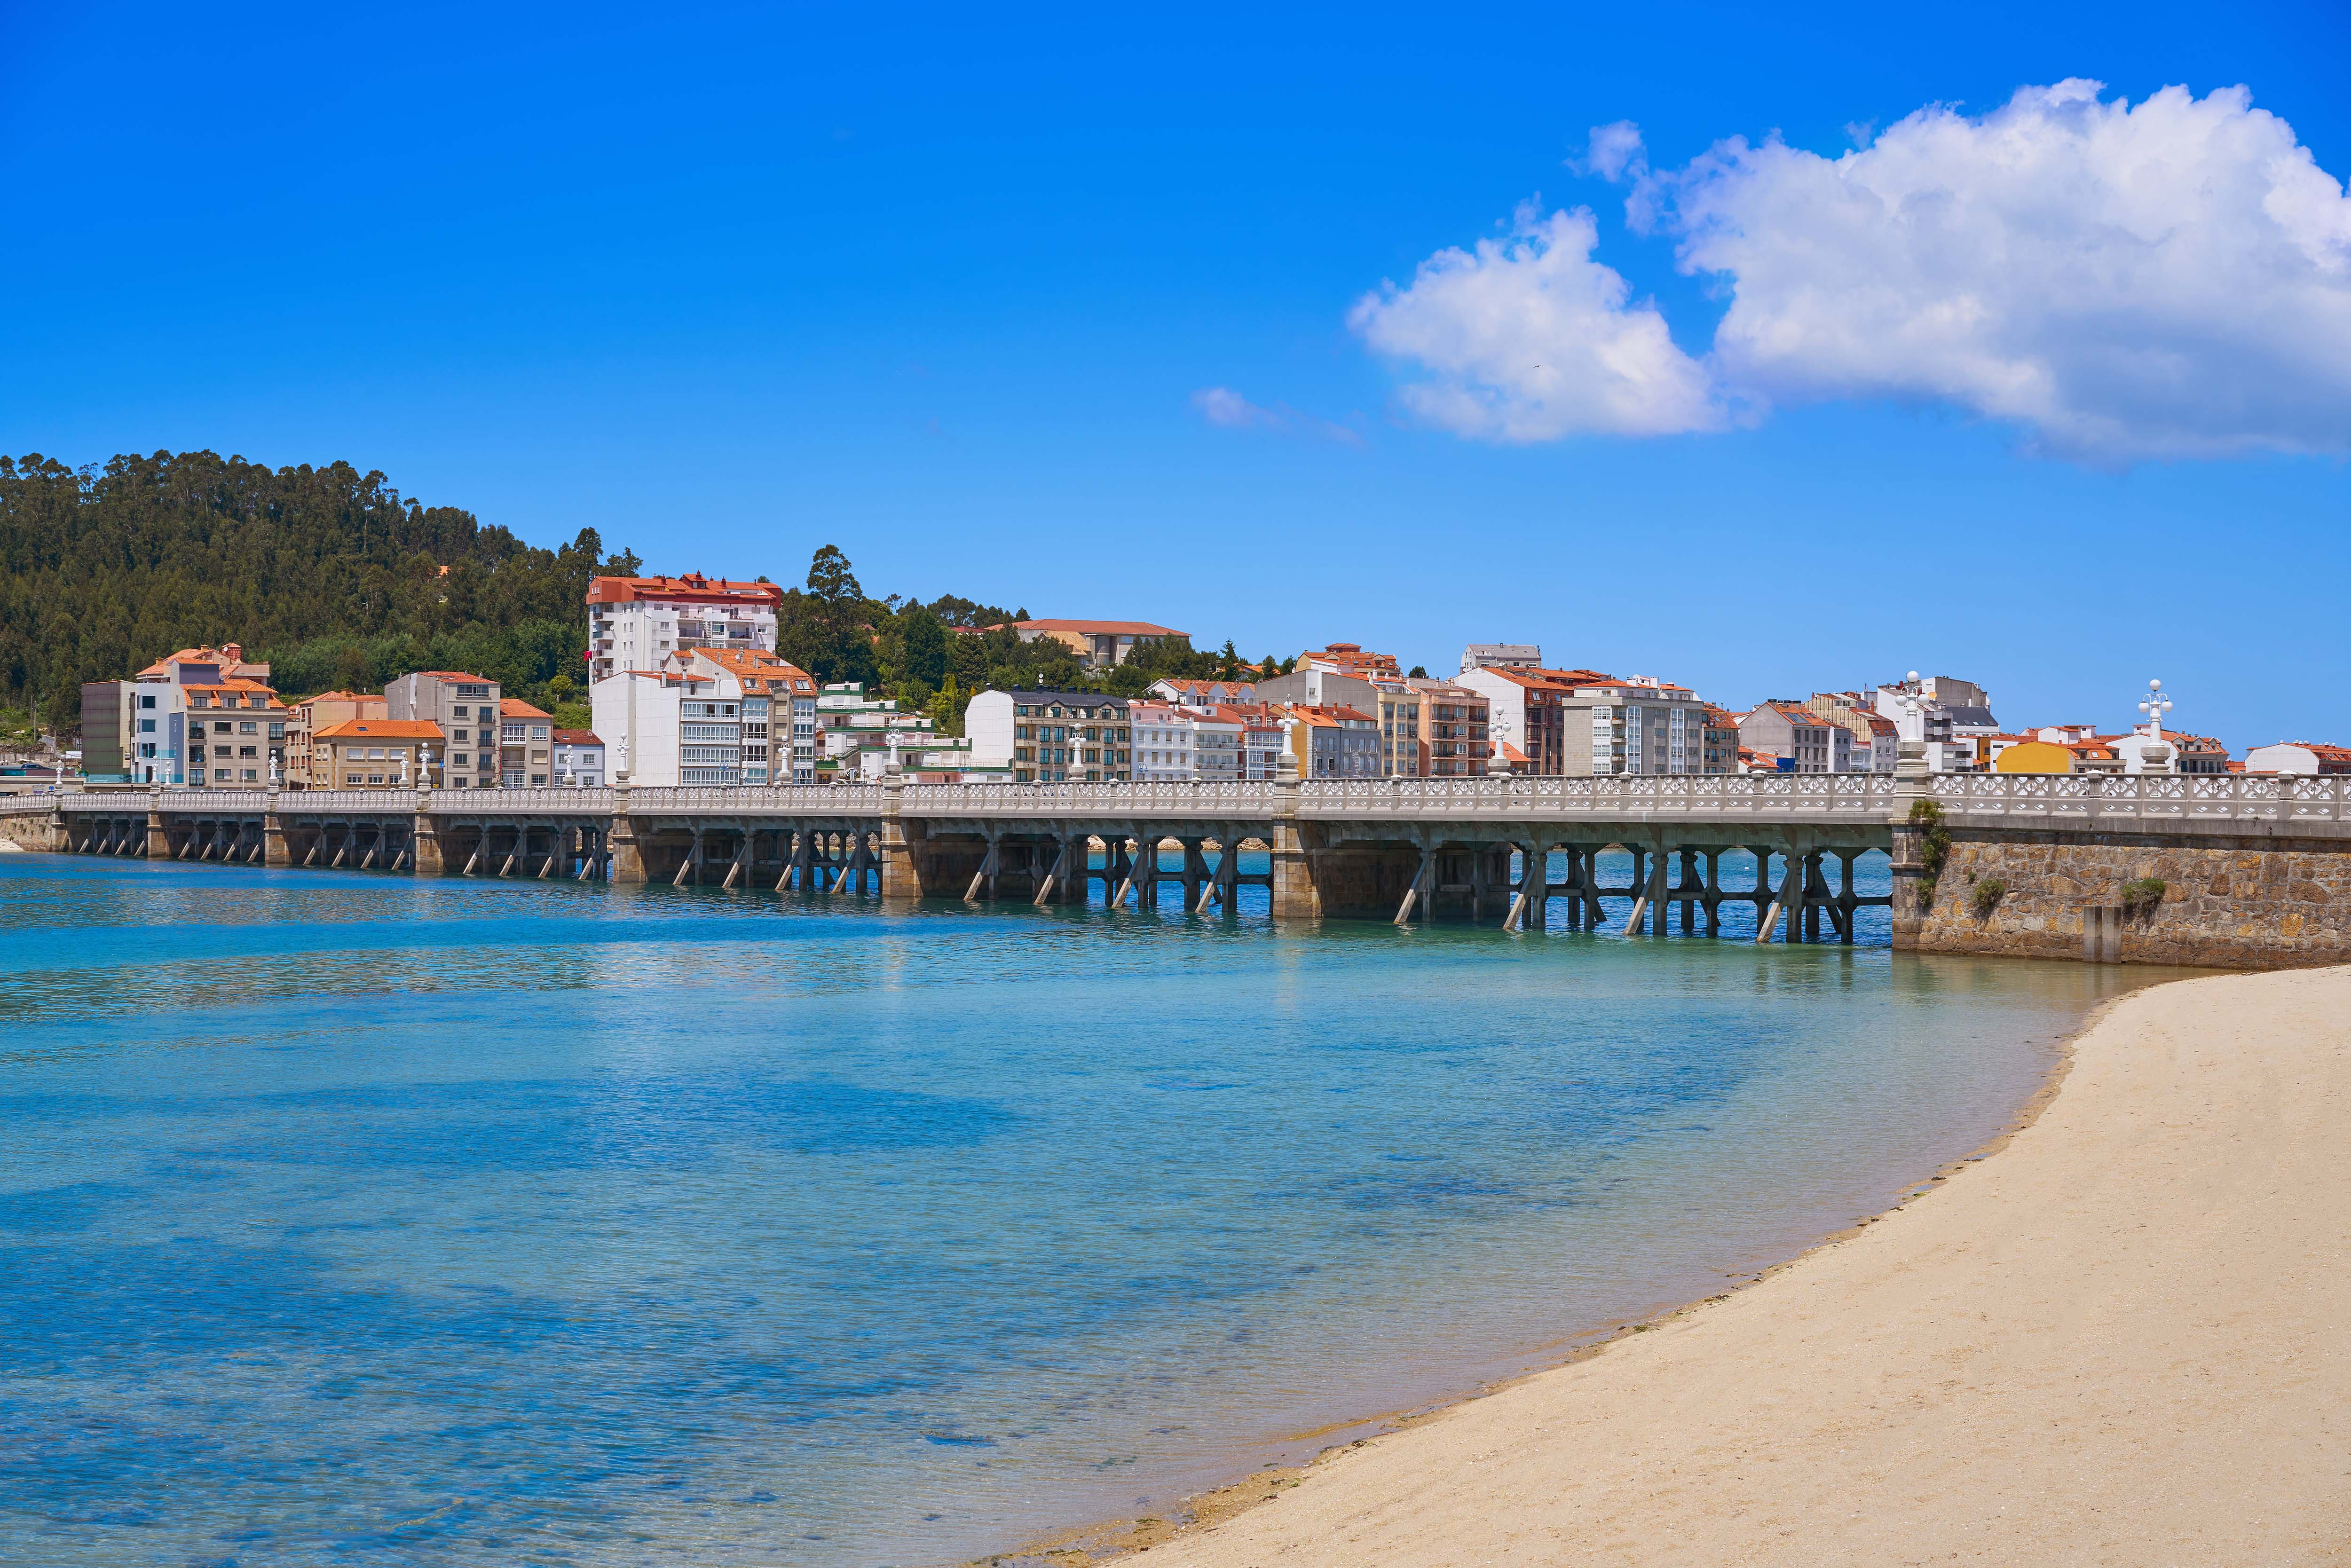 Taking a trip to Galicia's idyllic island of La Toxa